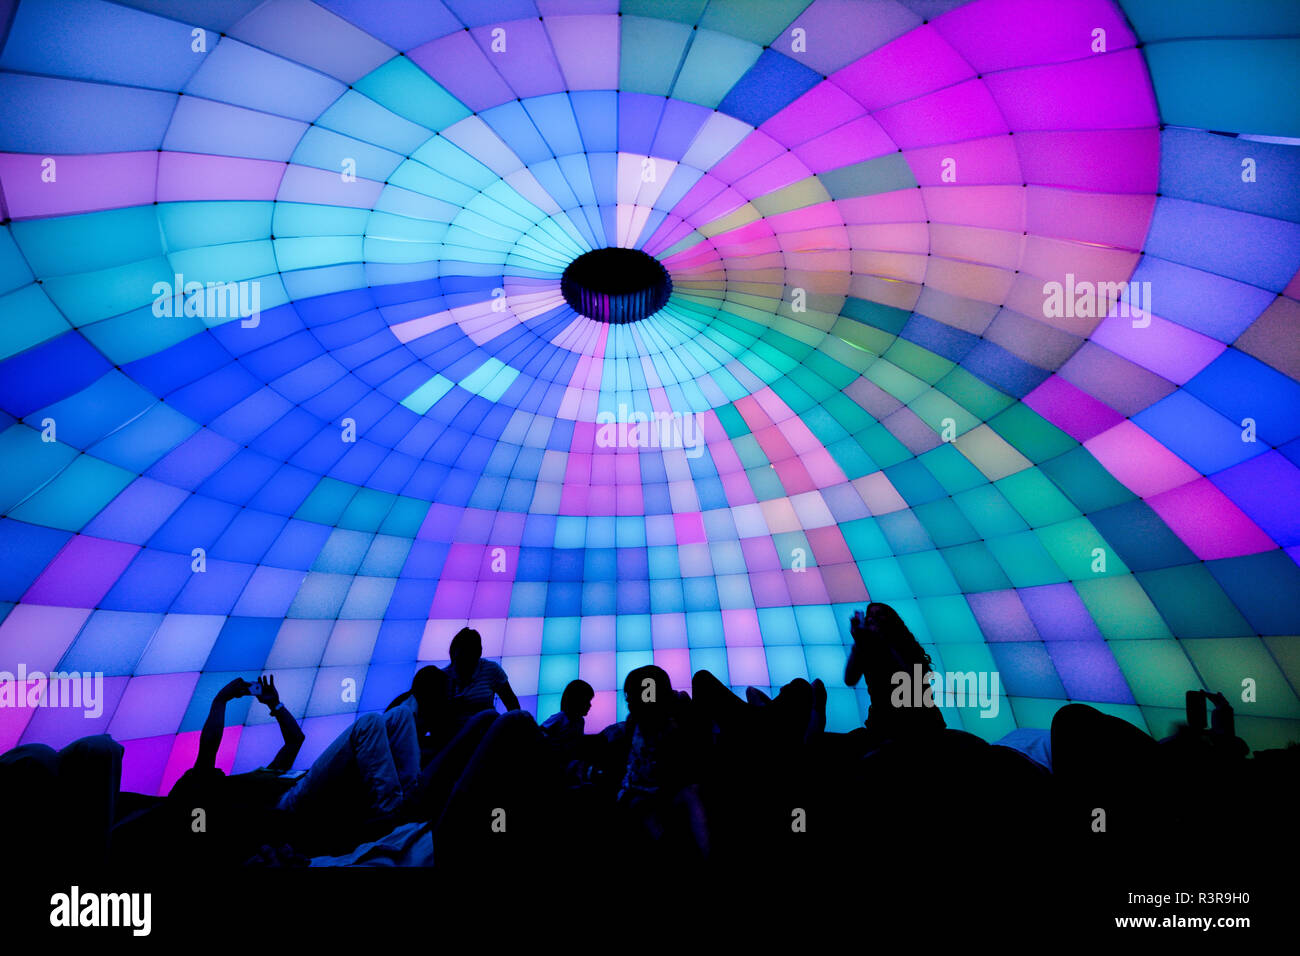 Plume, by Ian Brill, is an immersive, interactive dome of synchronized light and sound gestures. The installation uses motion, sound and color. - Stock Image